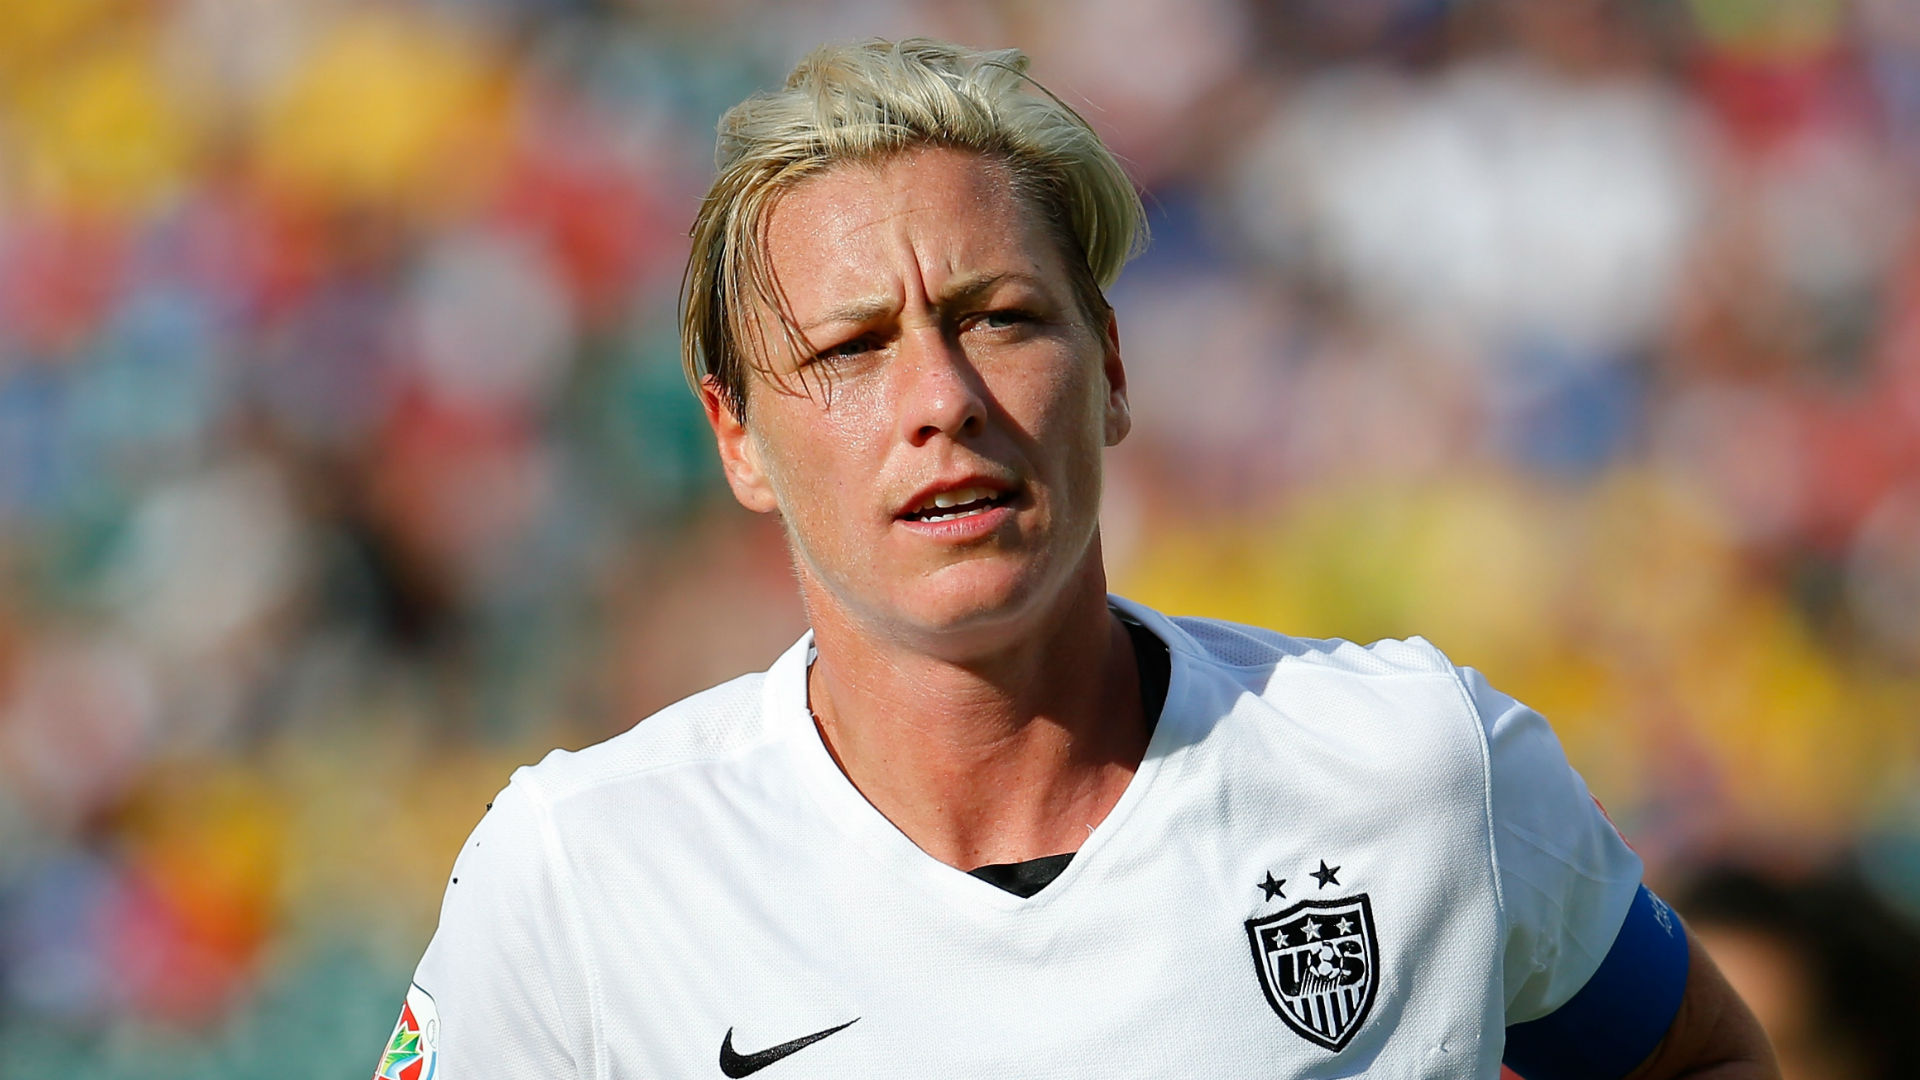 abby-wambach-062515-getty-ftr-us.jpg